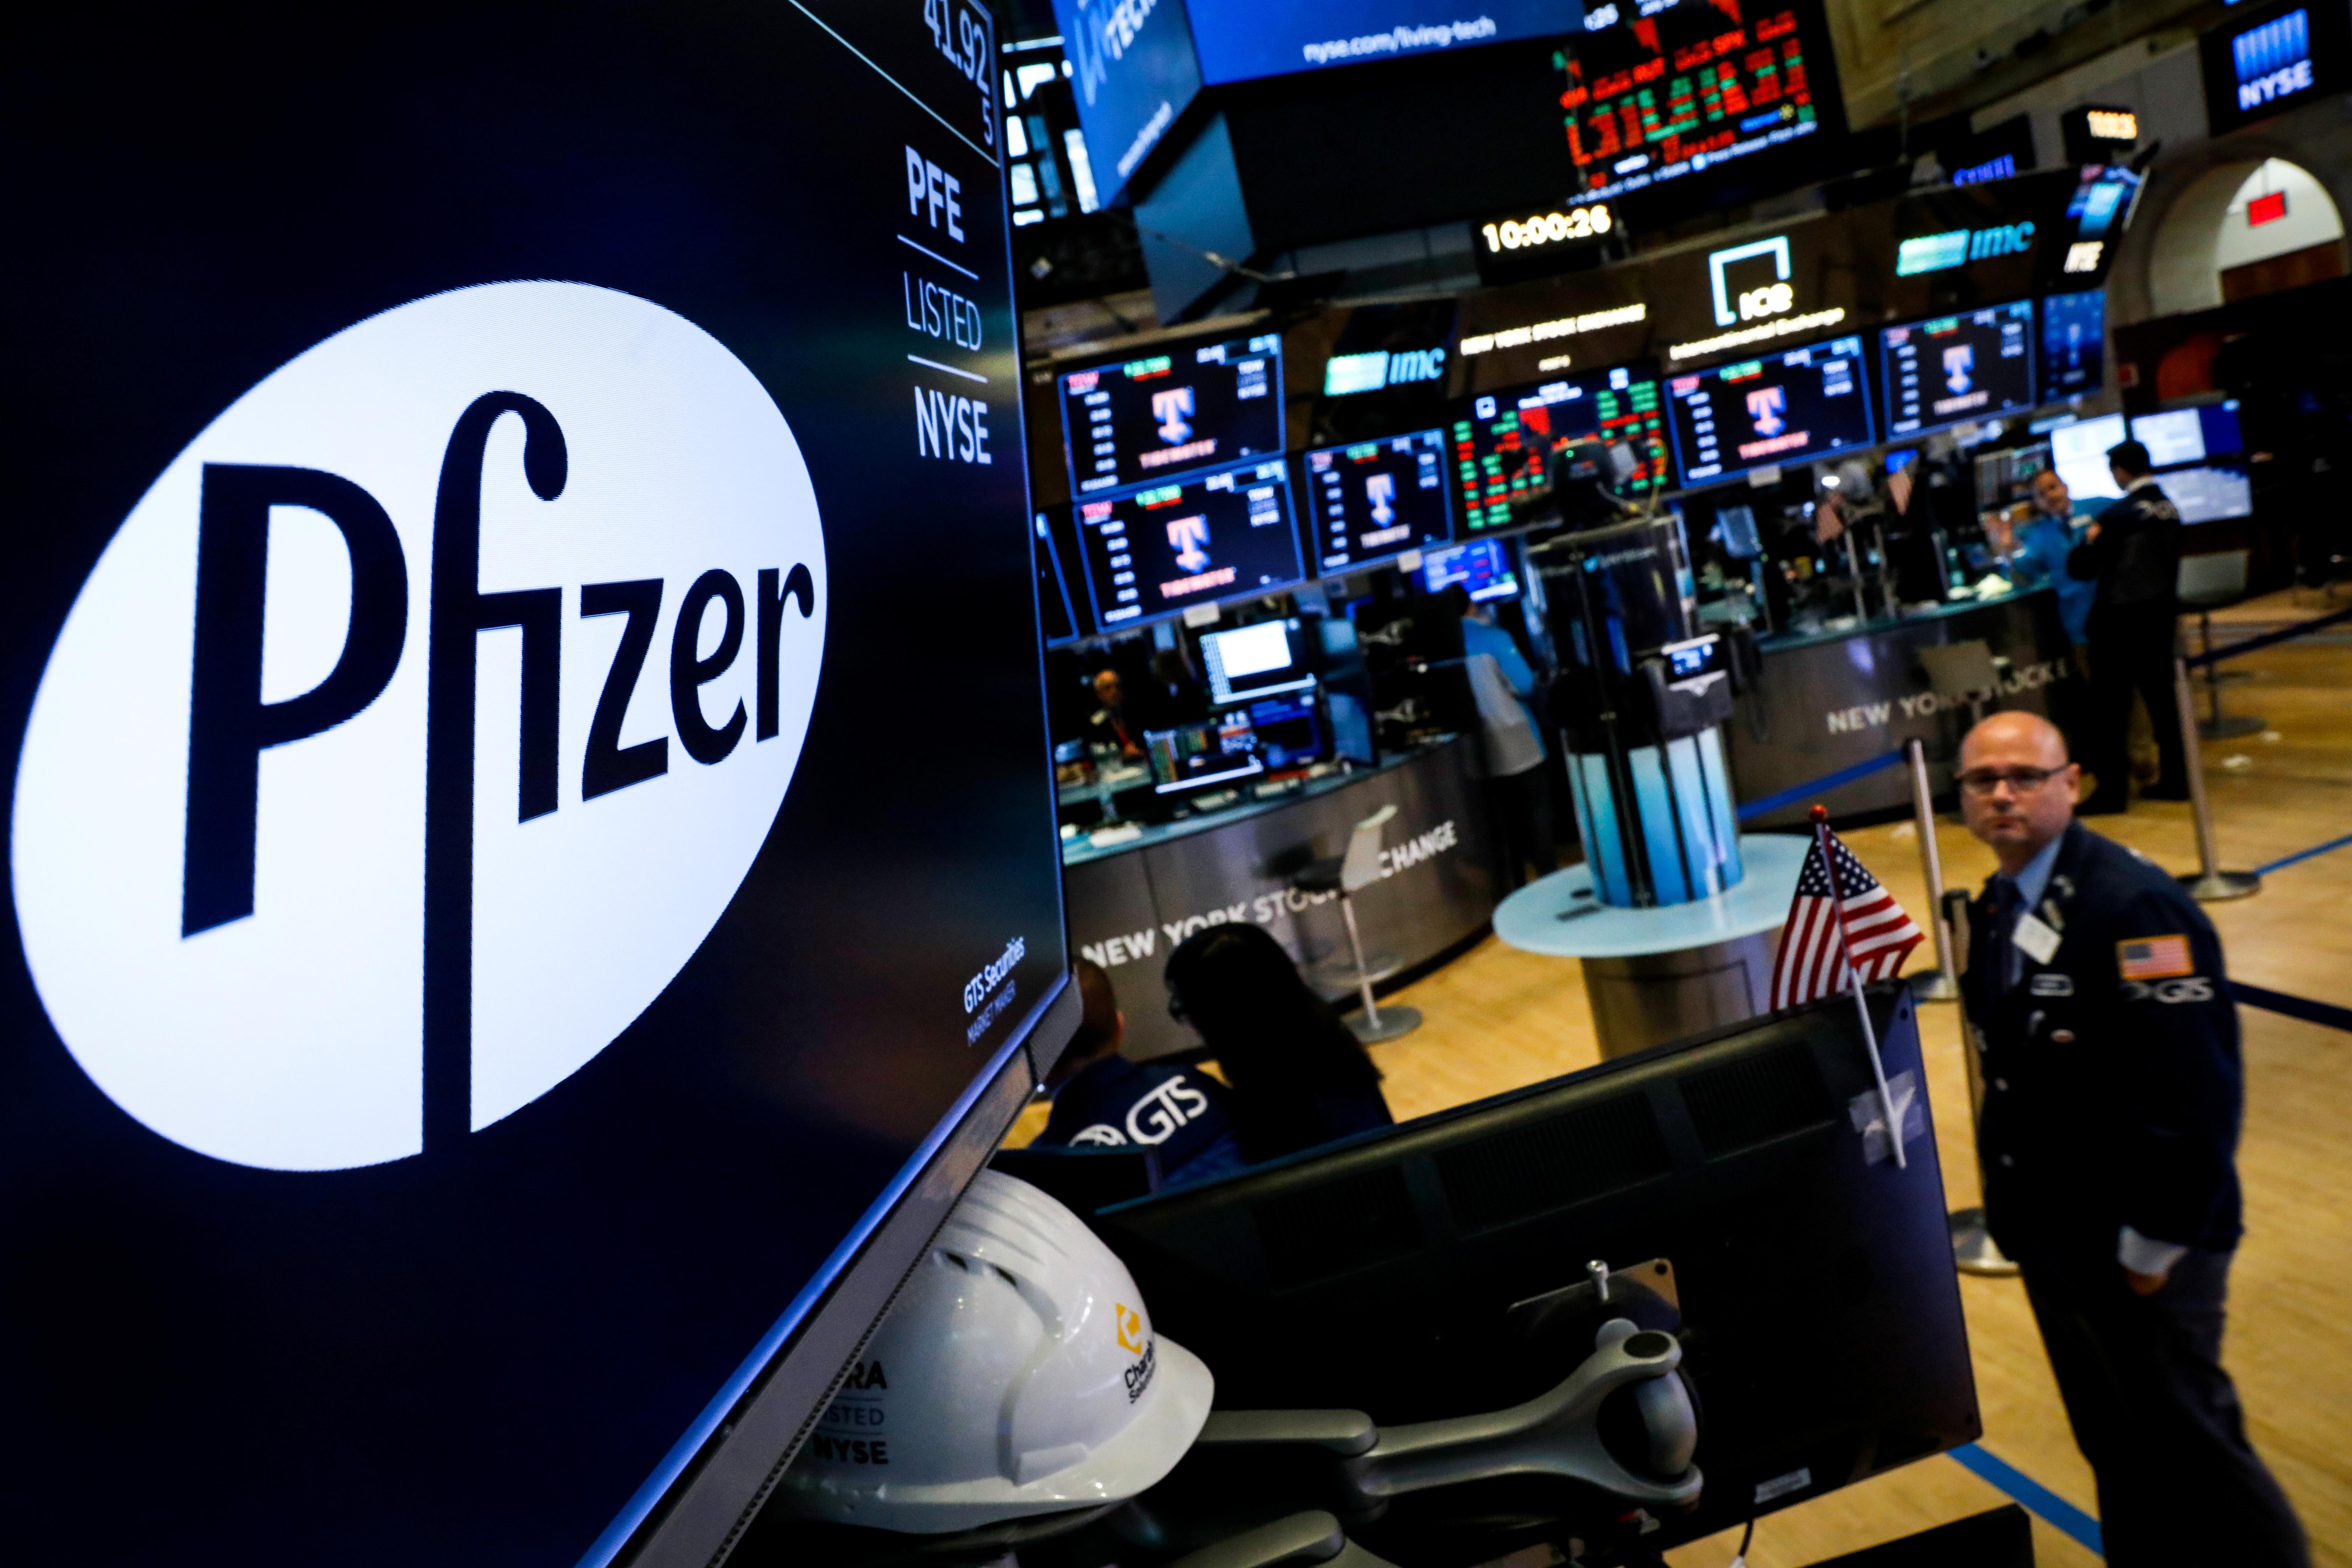 Pfizer to spinoff, merge off-patent drugs unit with Mylan – Busines